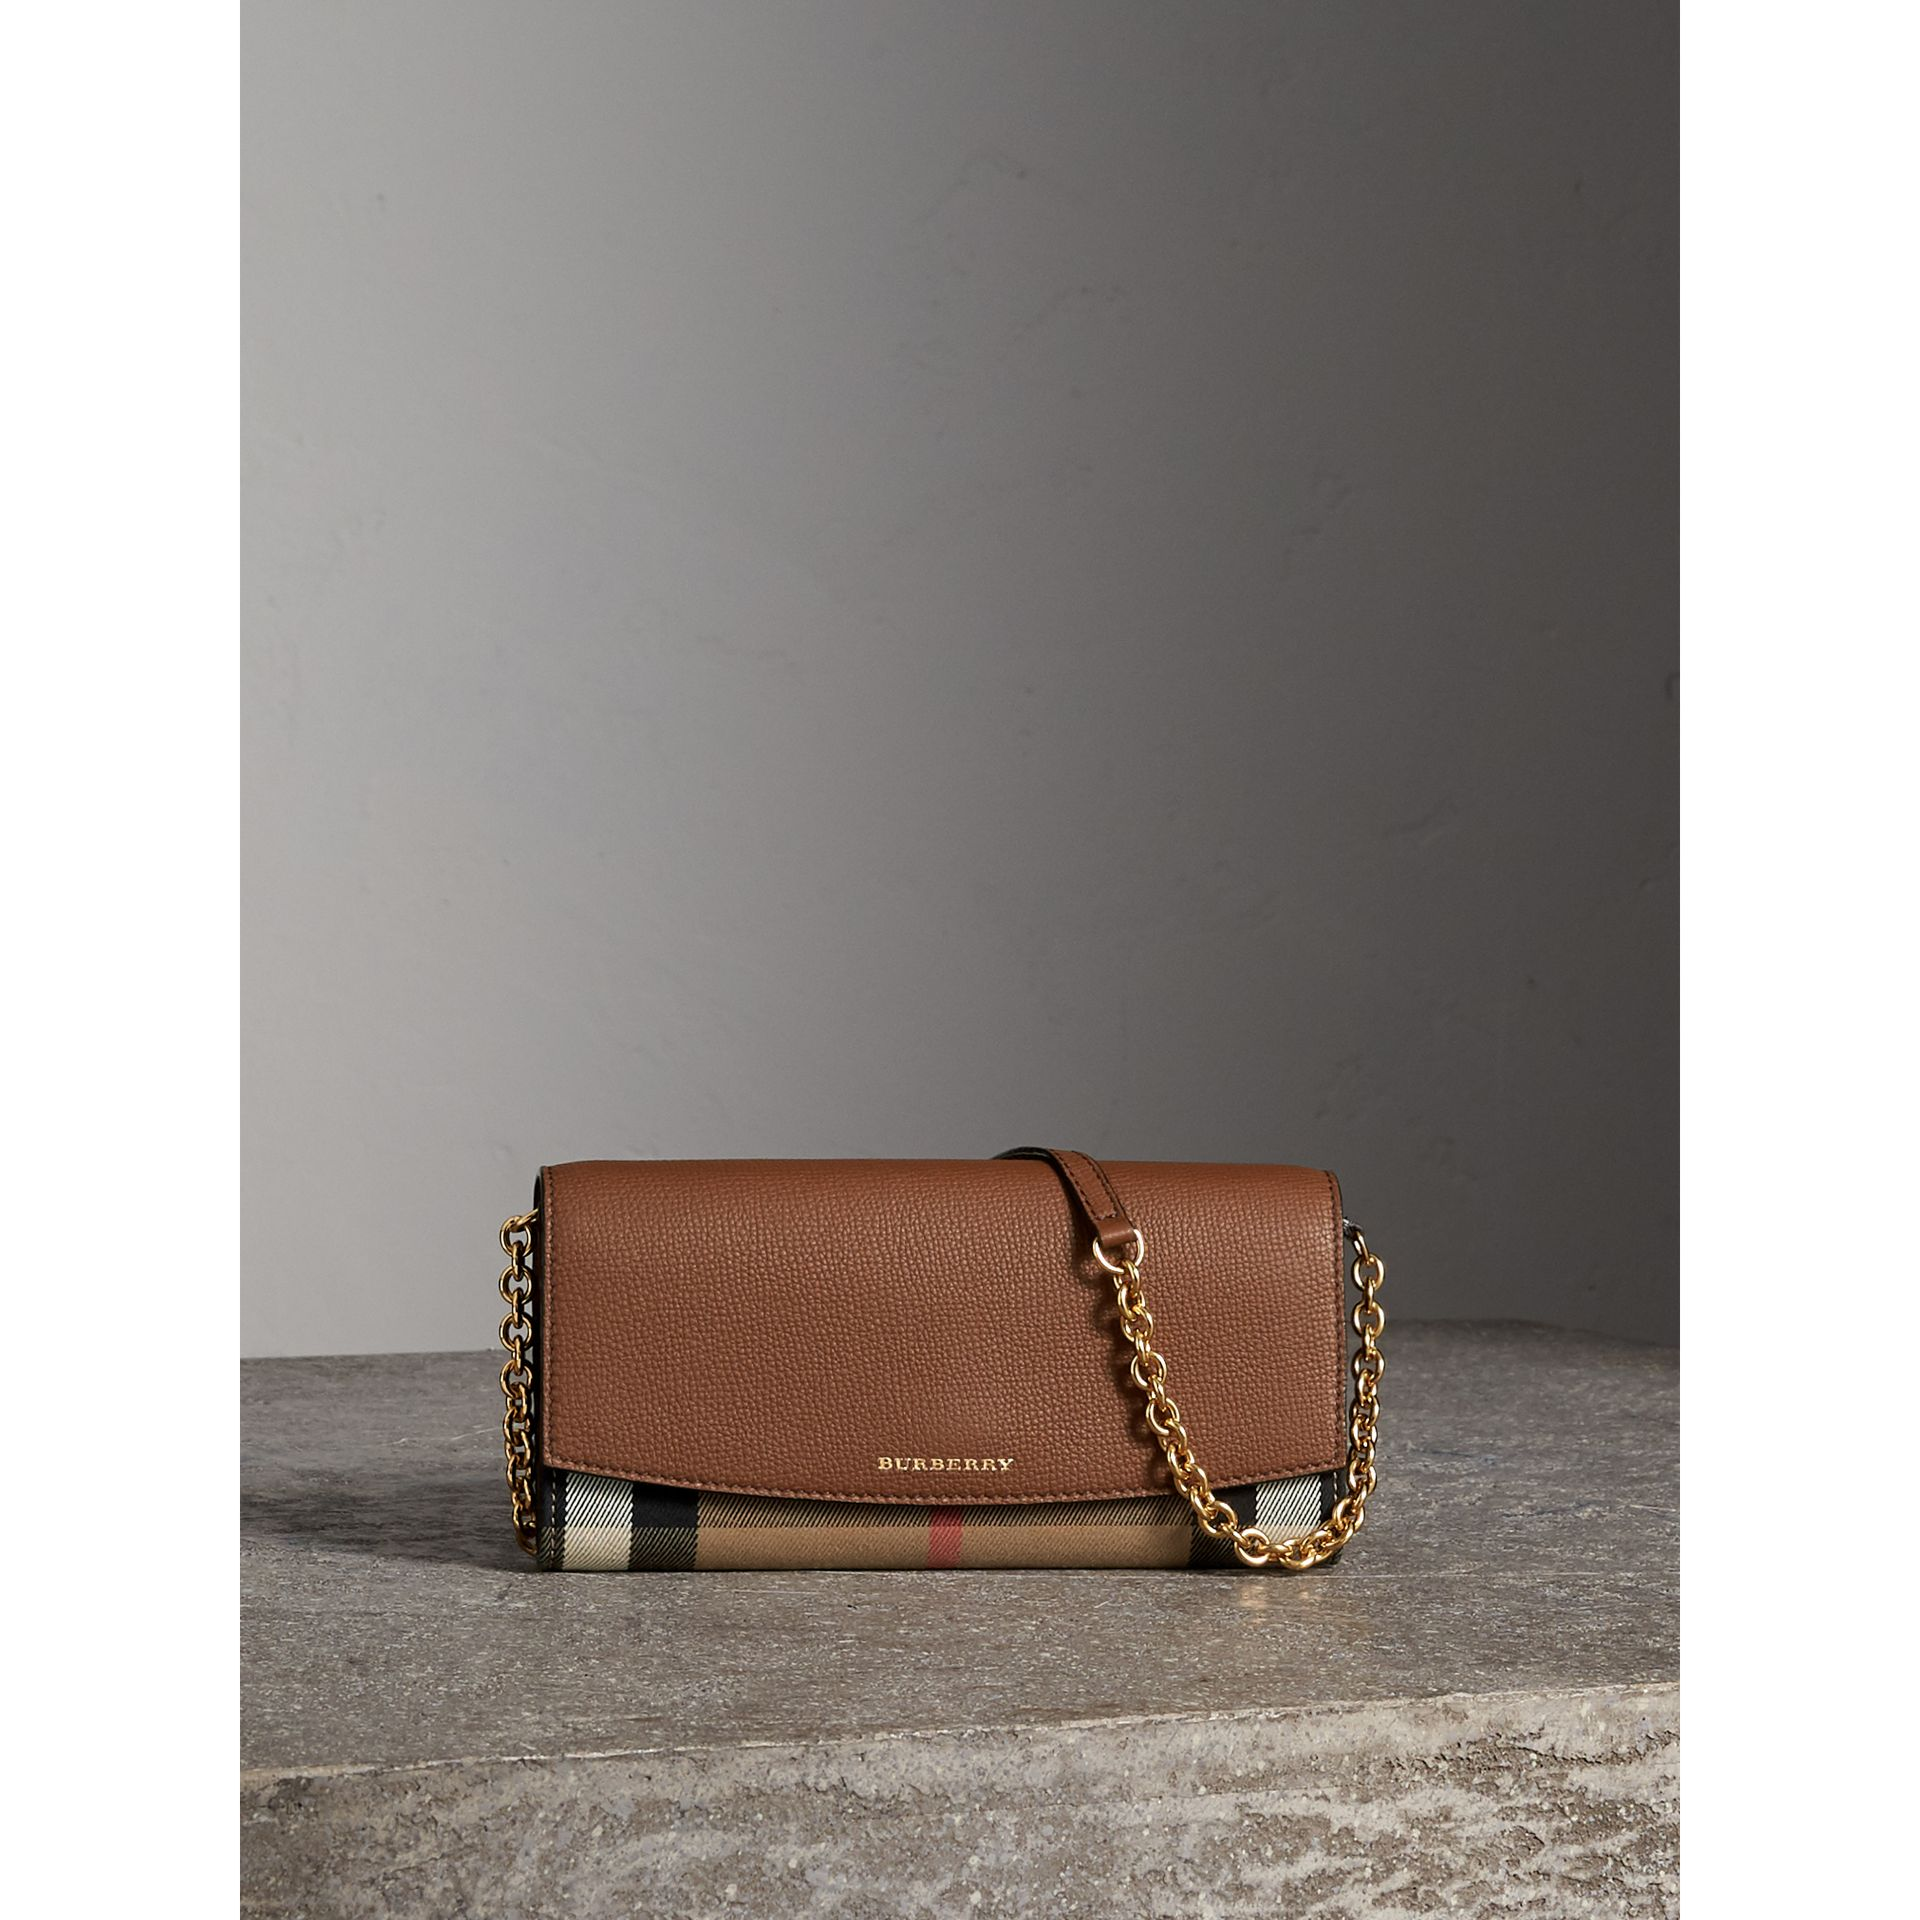 House Check and Leather Wallet with Chain in Tan - Women | Burberry Singapore - gallery image 1